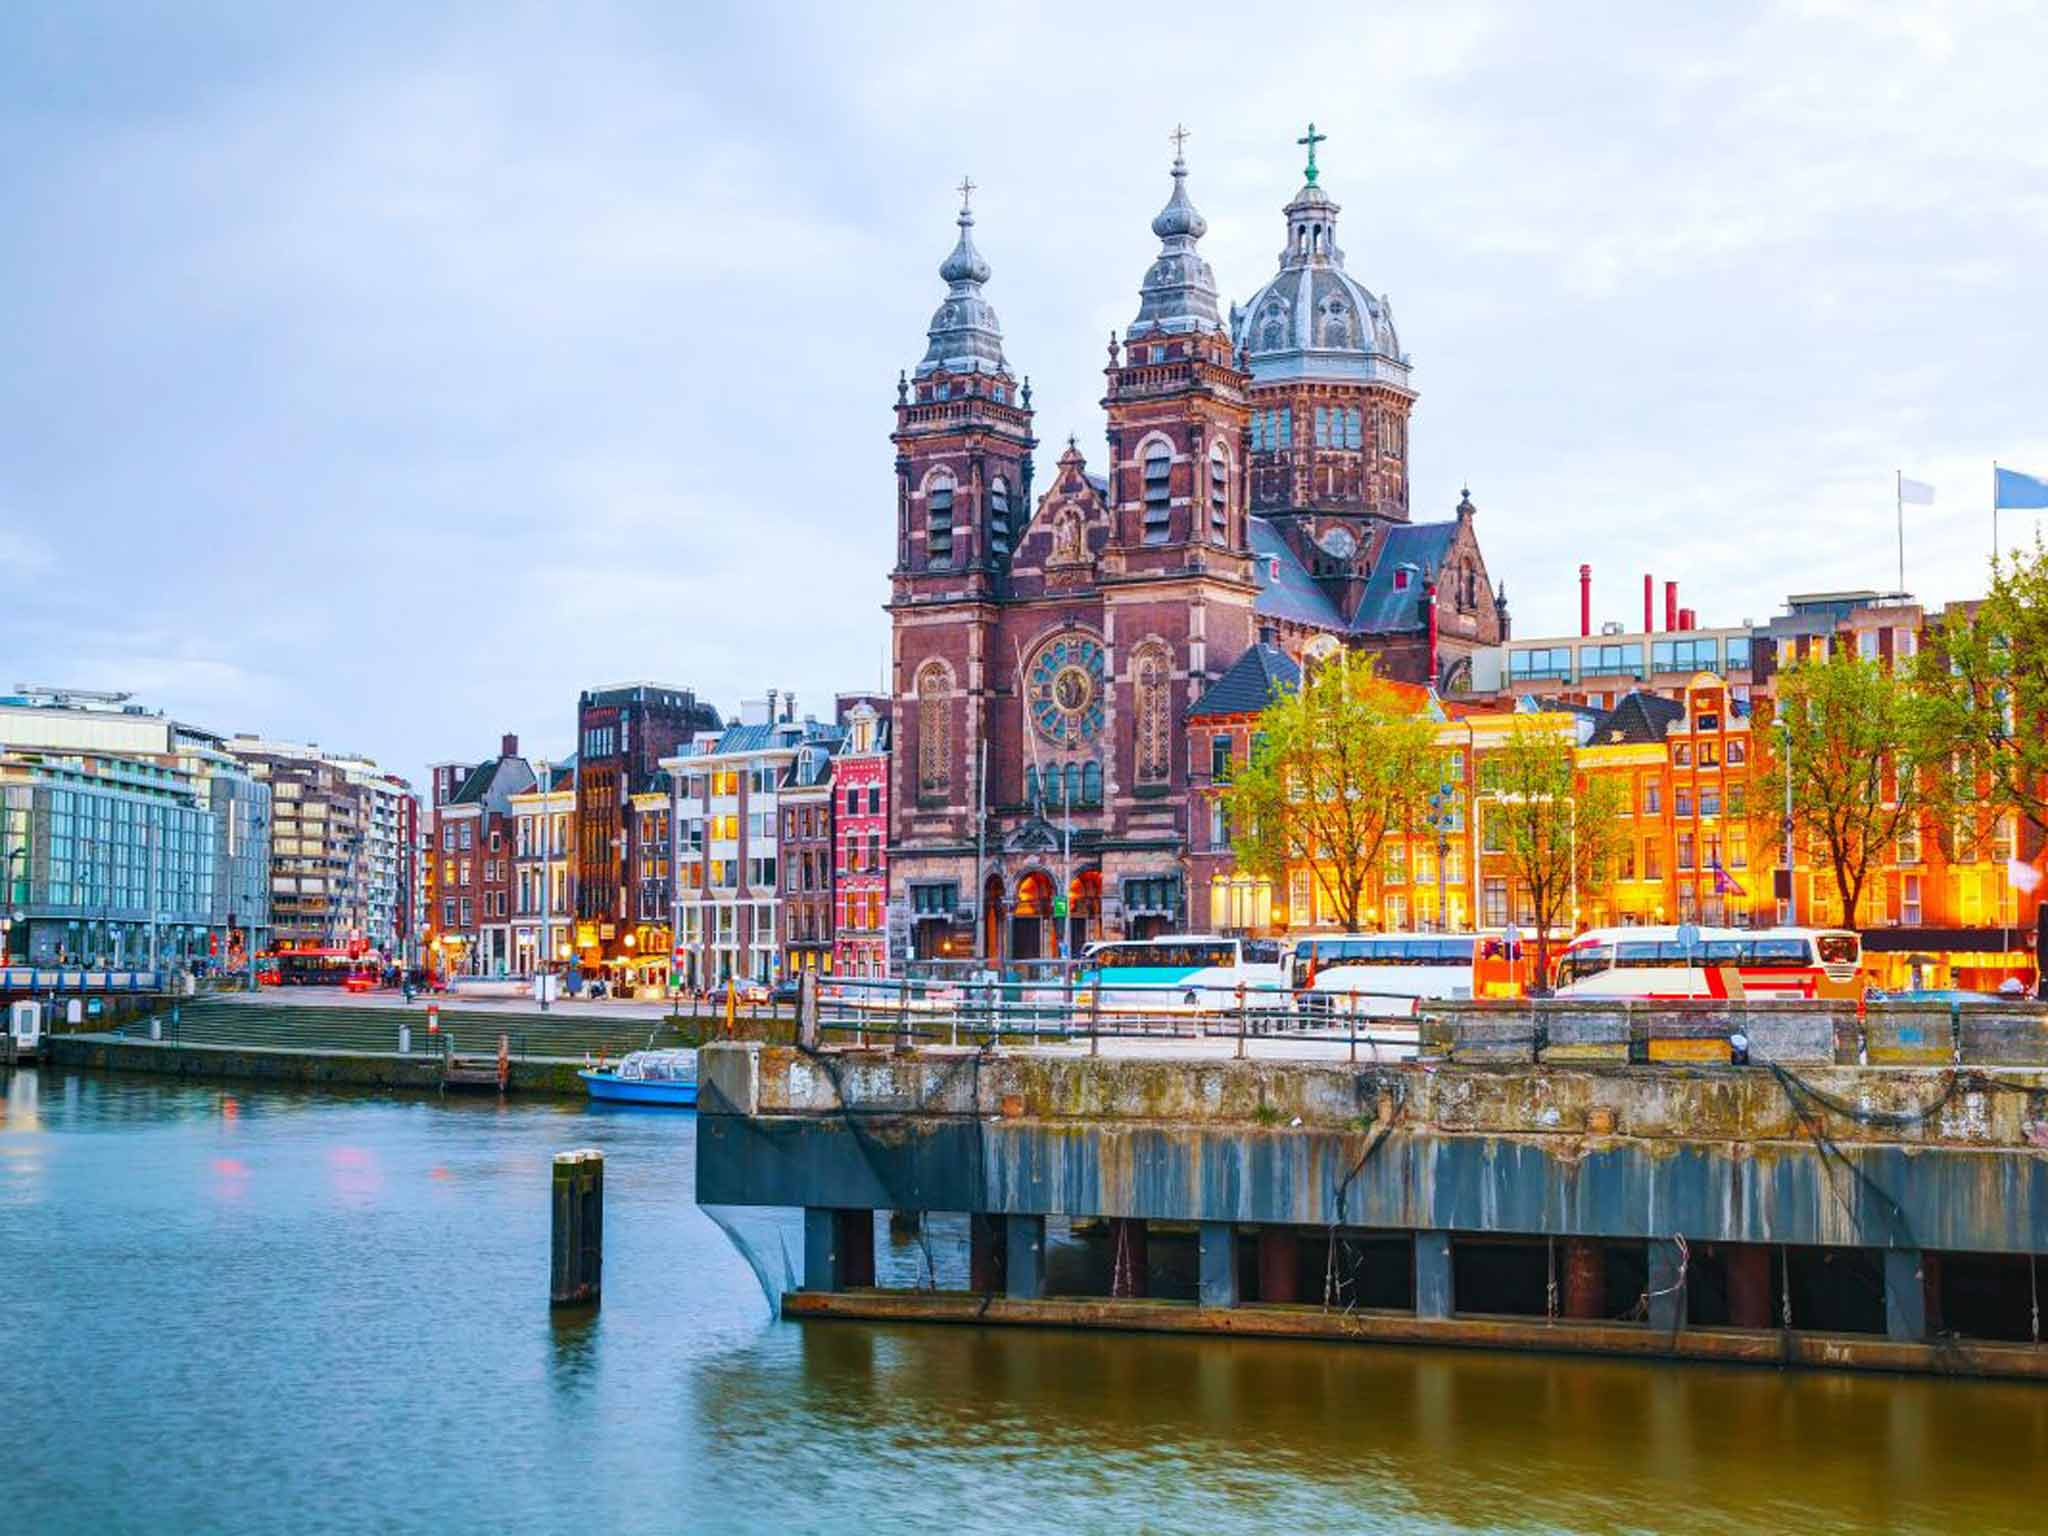 Amsterdam travel tips: Where to go and what to see in 48 hours | The ...